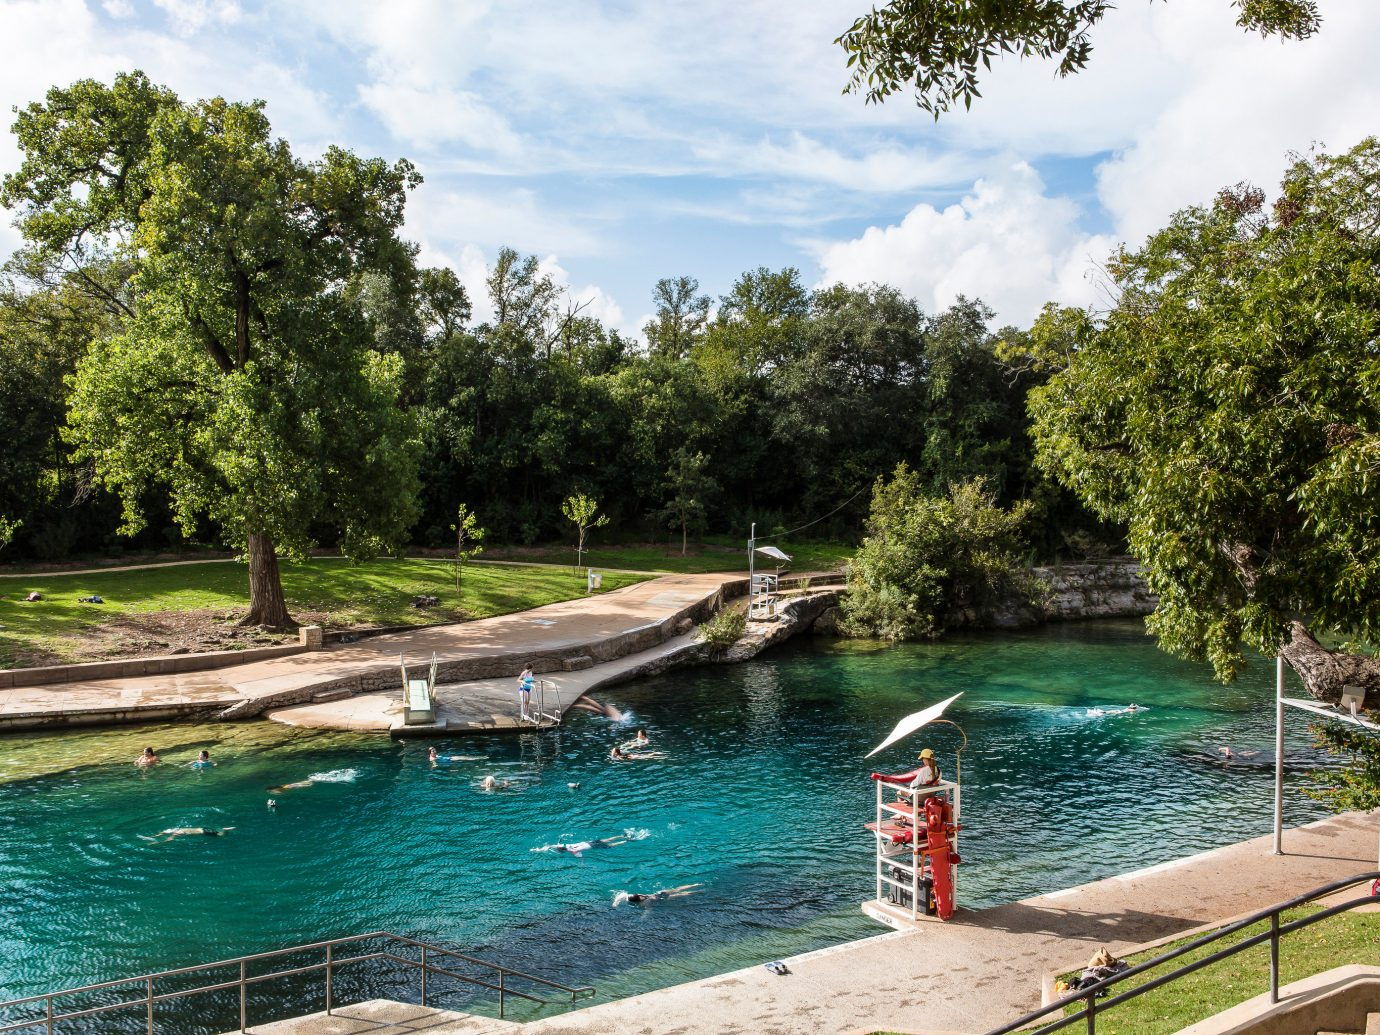 Arts + Culture Austin Nashville Trip Ideas Weekend Getaways tree outdoor water Boat swimming pool estate River Pool waterway Lake pond docked backyard shore swimming surrounded day